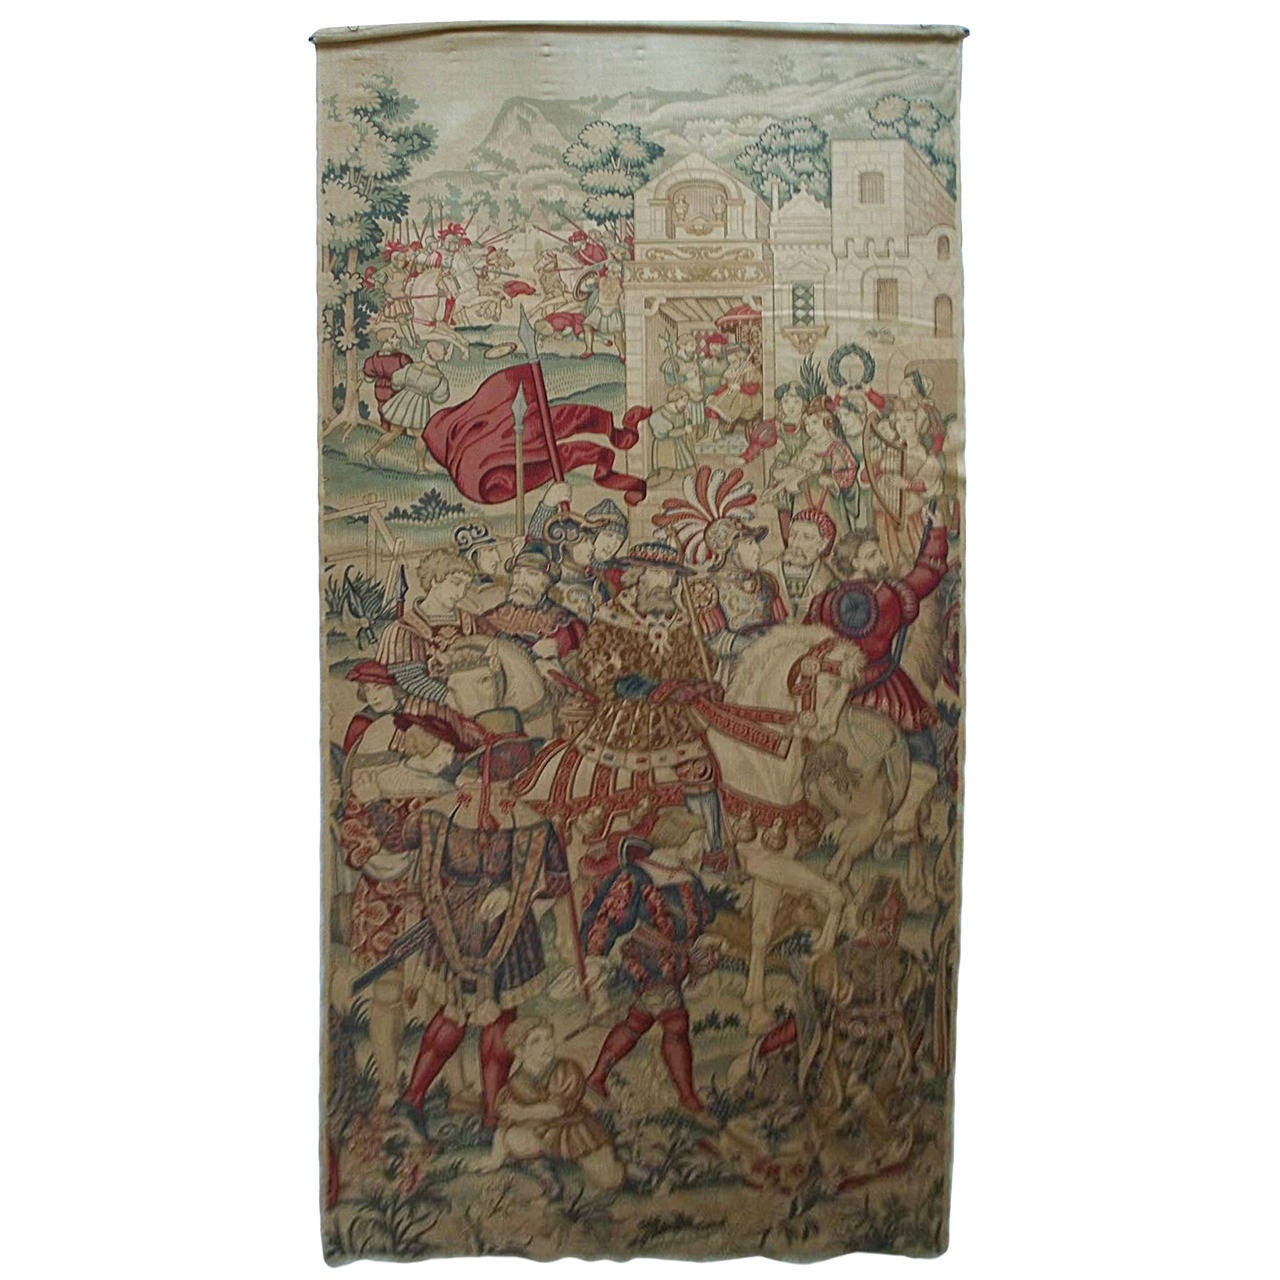 Elegant Superb, Large, Wall Hanging,Tapestry, Rich Medieval Pattern, French, Circa